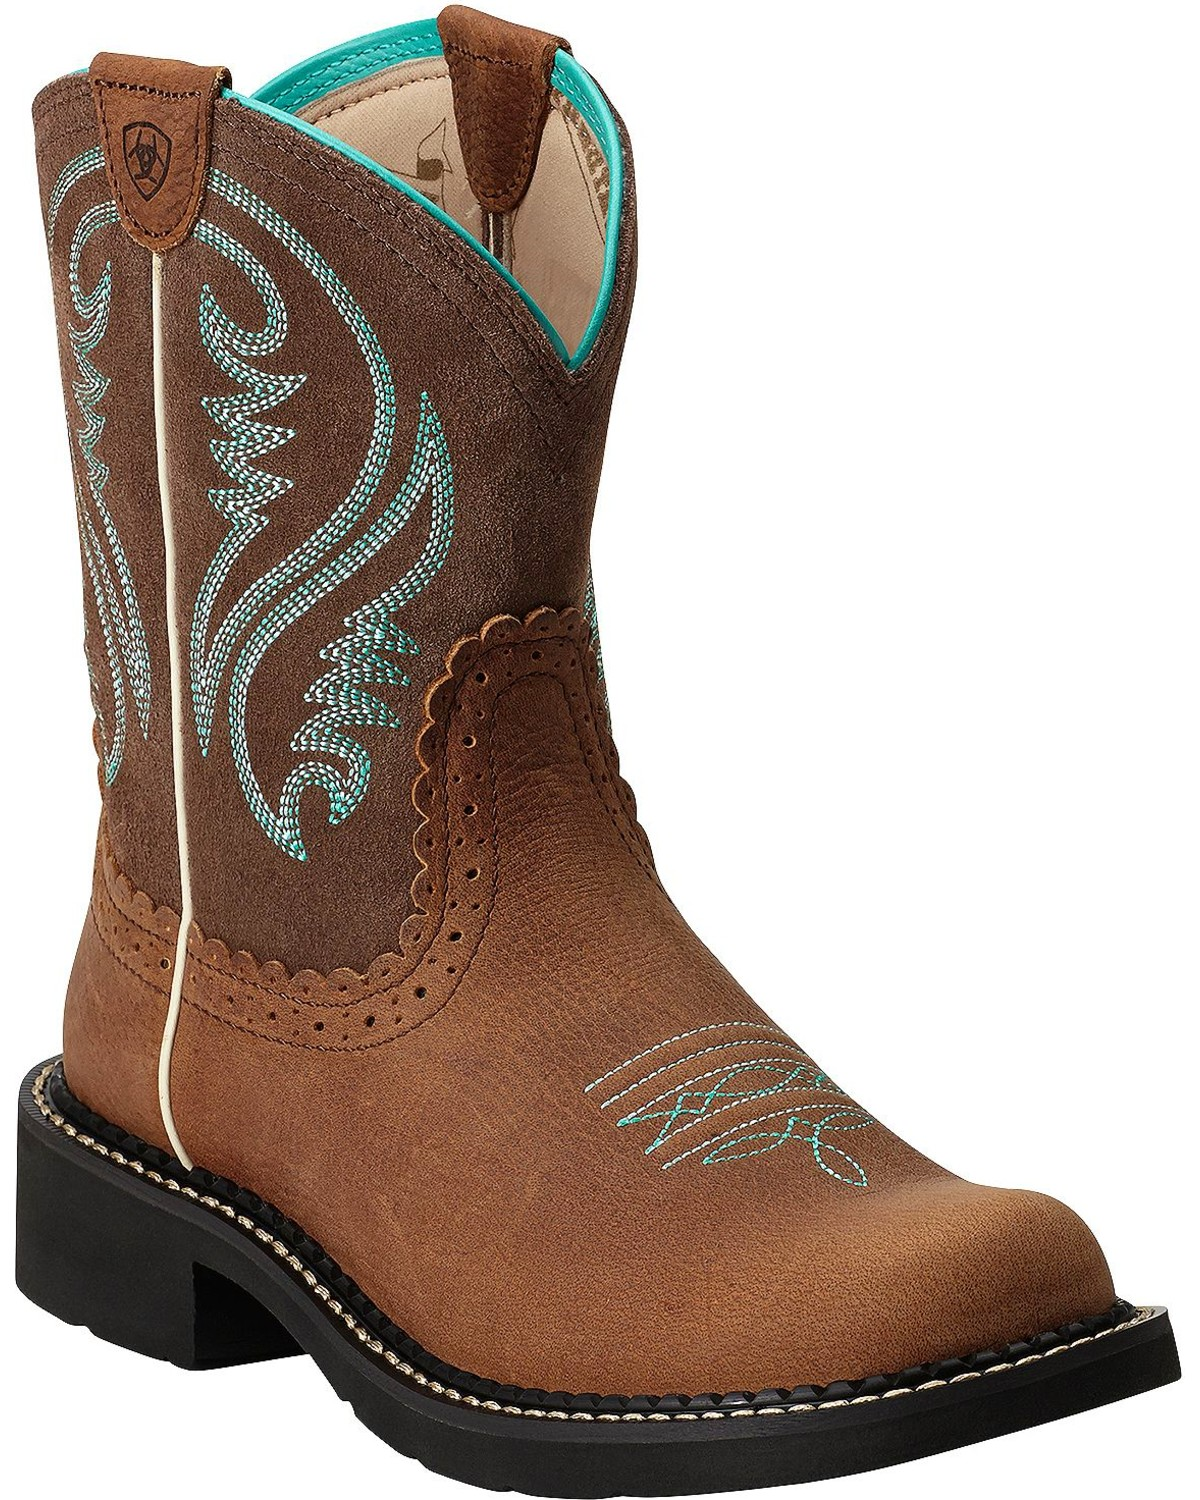 Ariat Fatbaby Heritage Cowgirl Boots Boot Barn